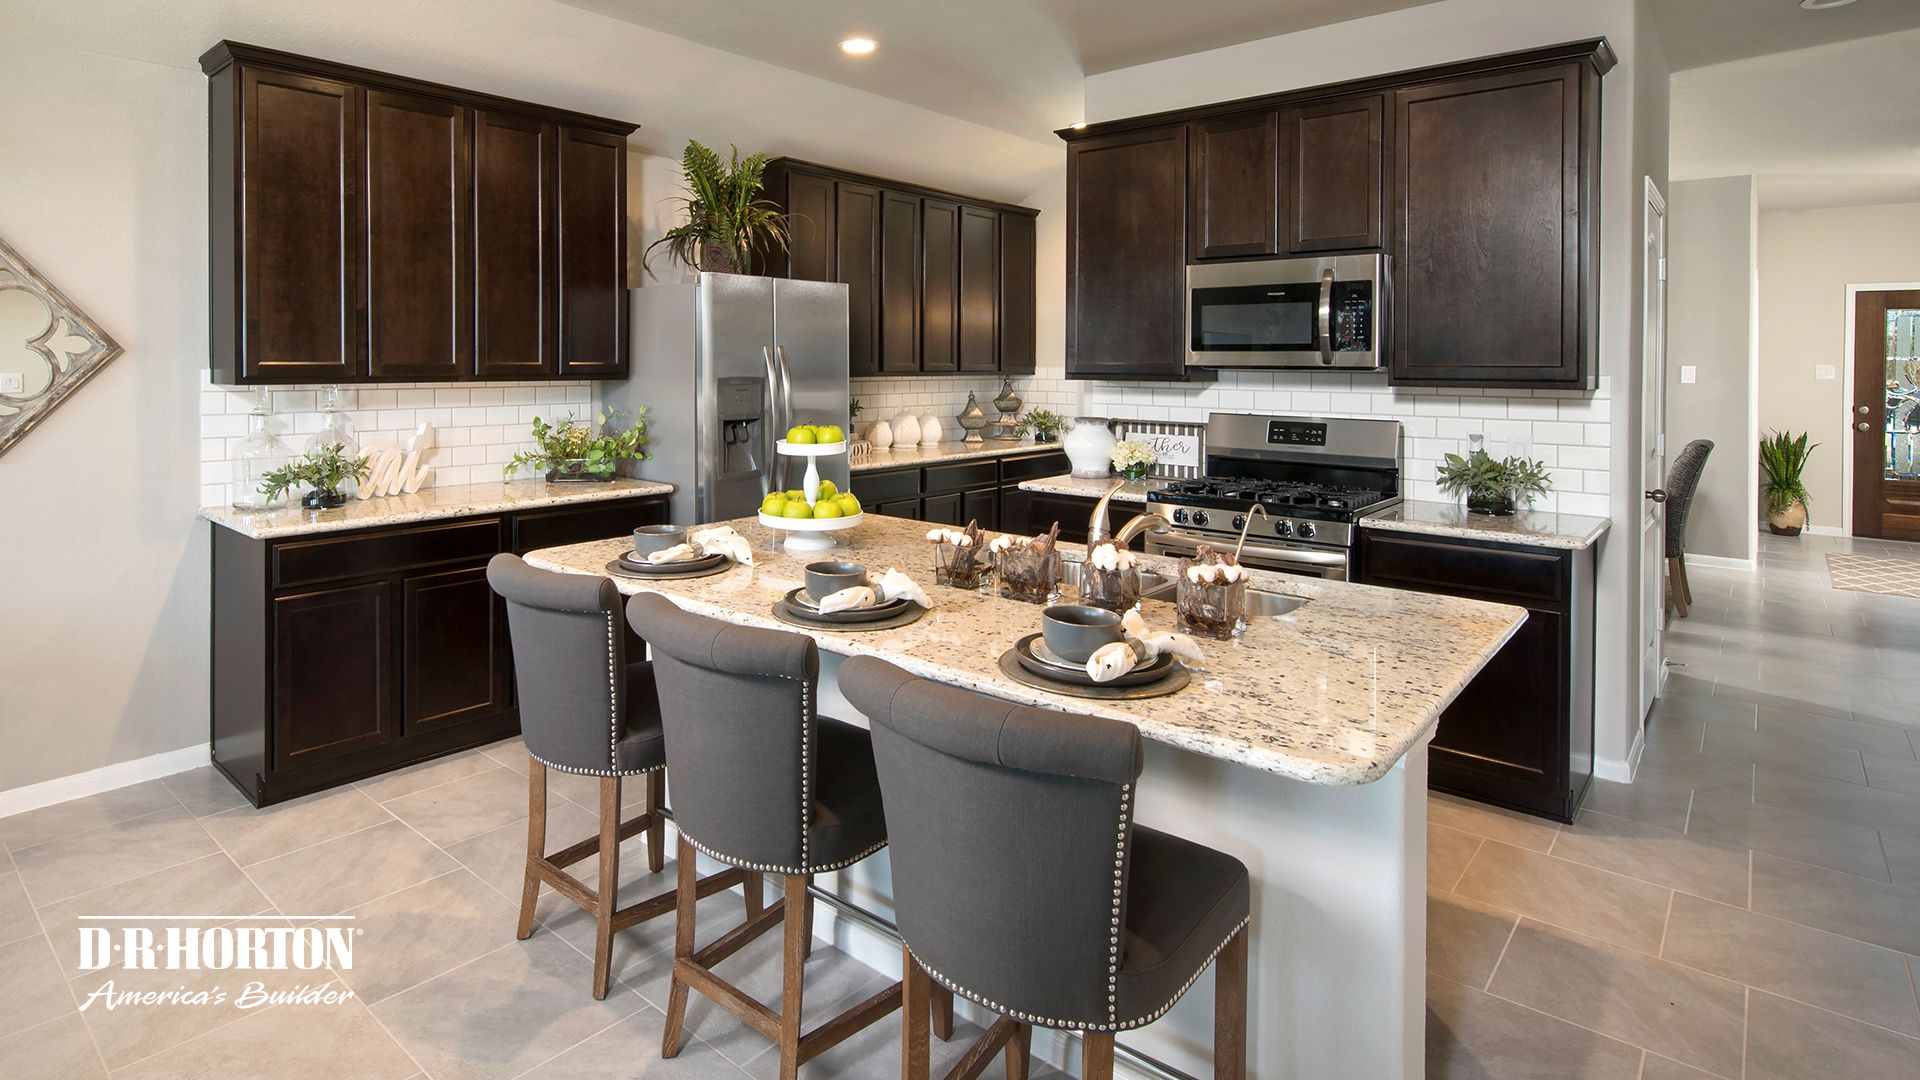 Lakeview Retreat I D R Horton In 2020 Kitchen Countertops Diy Kitchen Countertops New Kitchen Cabinets